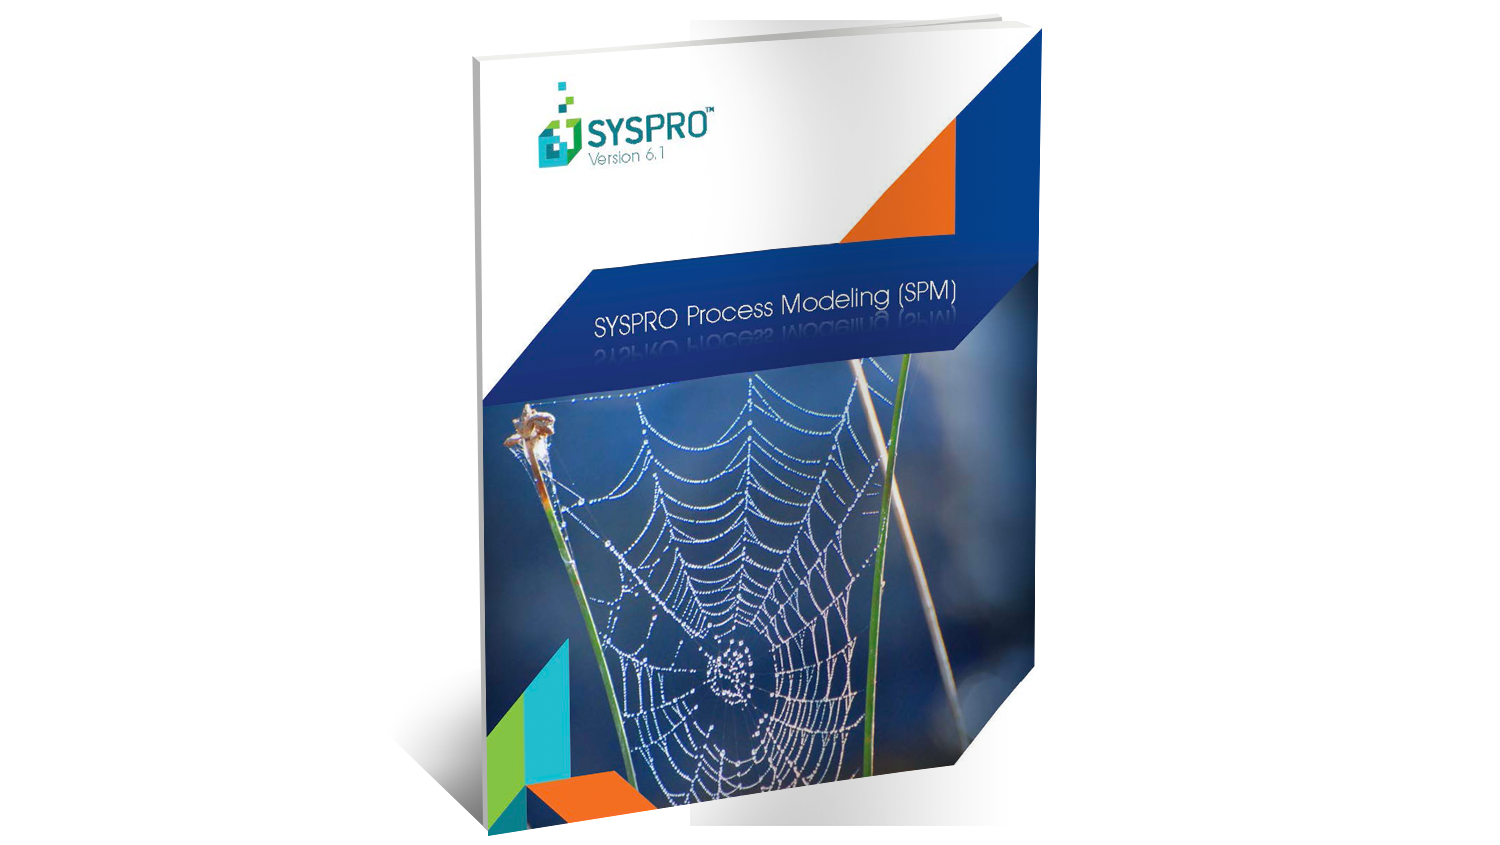 SYSPRO Process Modeling Brochure